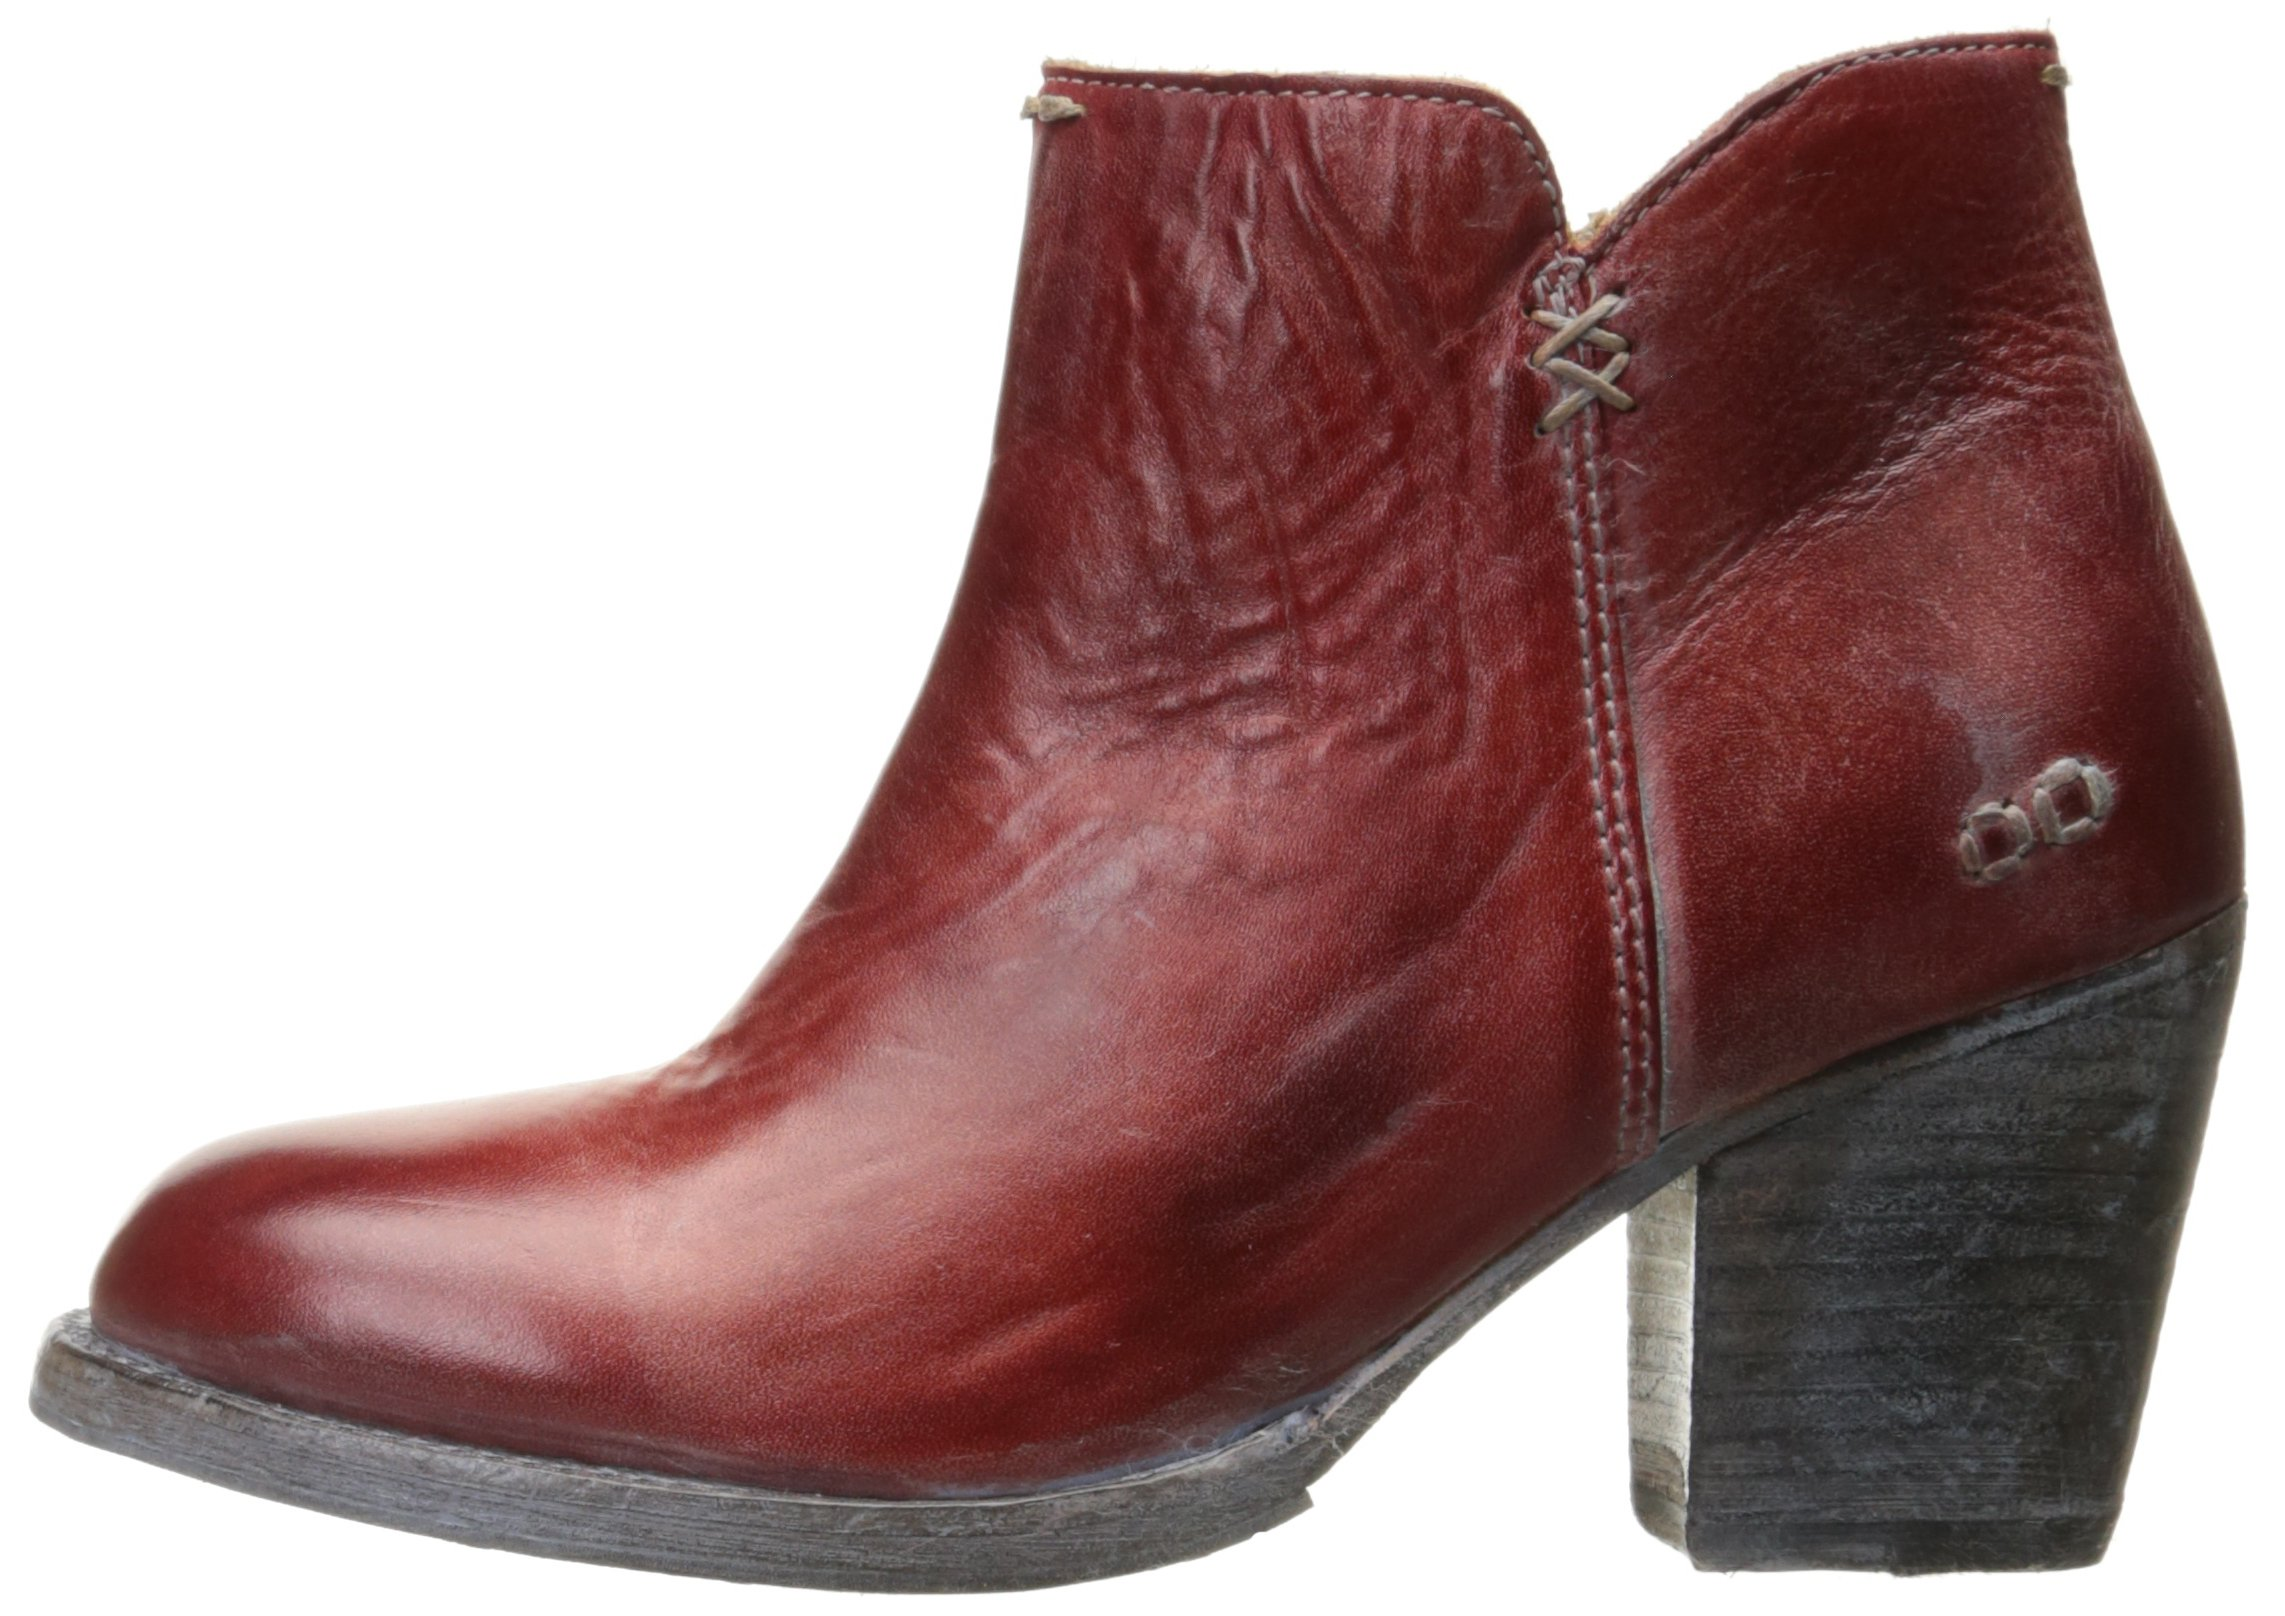 Bed|Stu Women's Yell Boot, Red Rustic/Blue, 8.5 M US by Bed|Stu (Image #5)